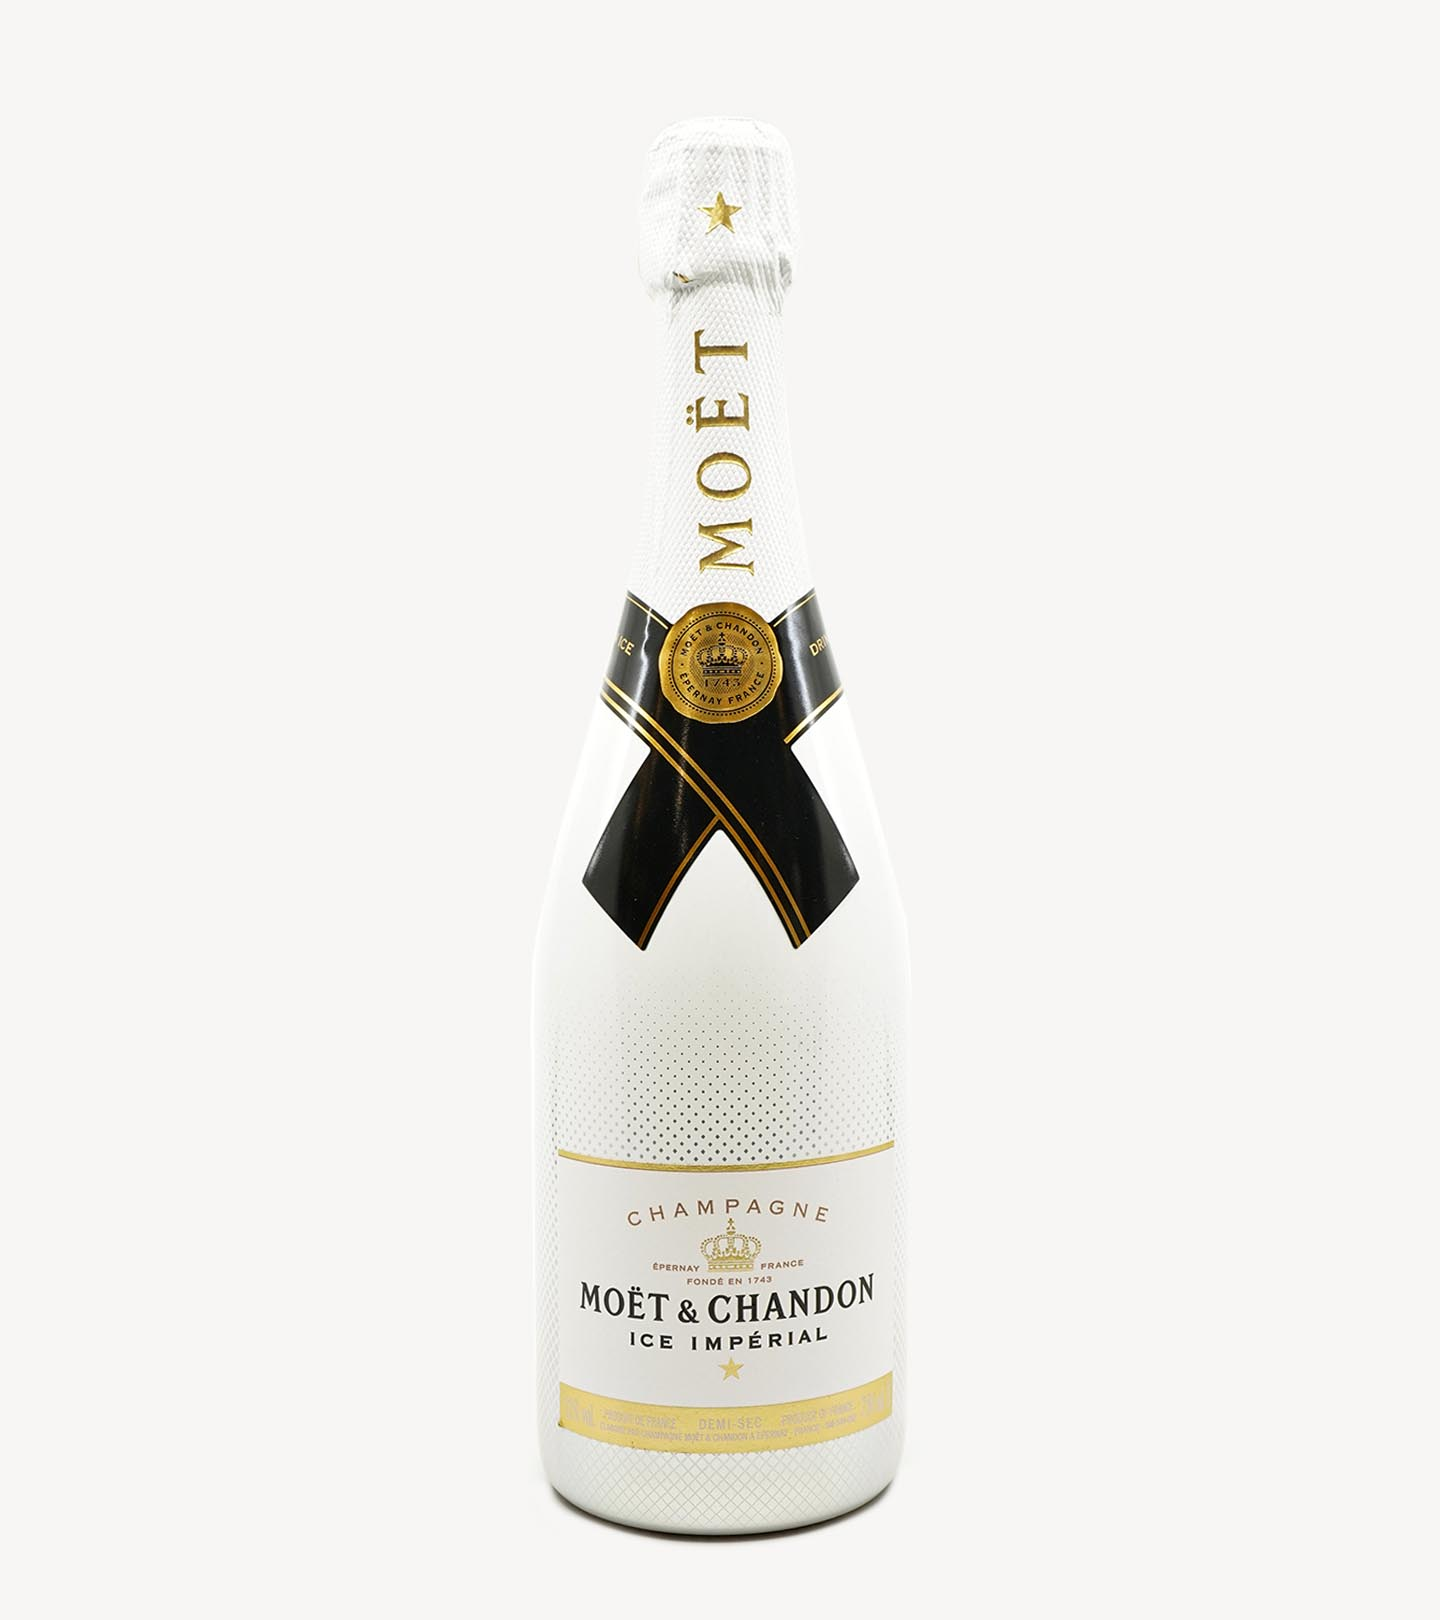 Champagne Moet & Chandon Ice Imperial 75cl